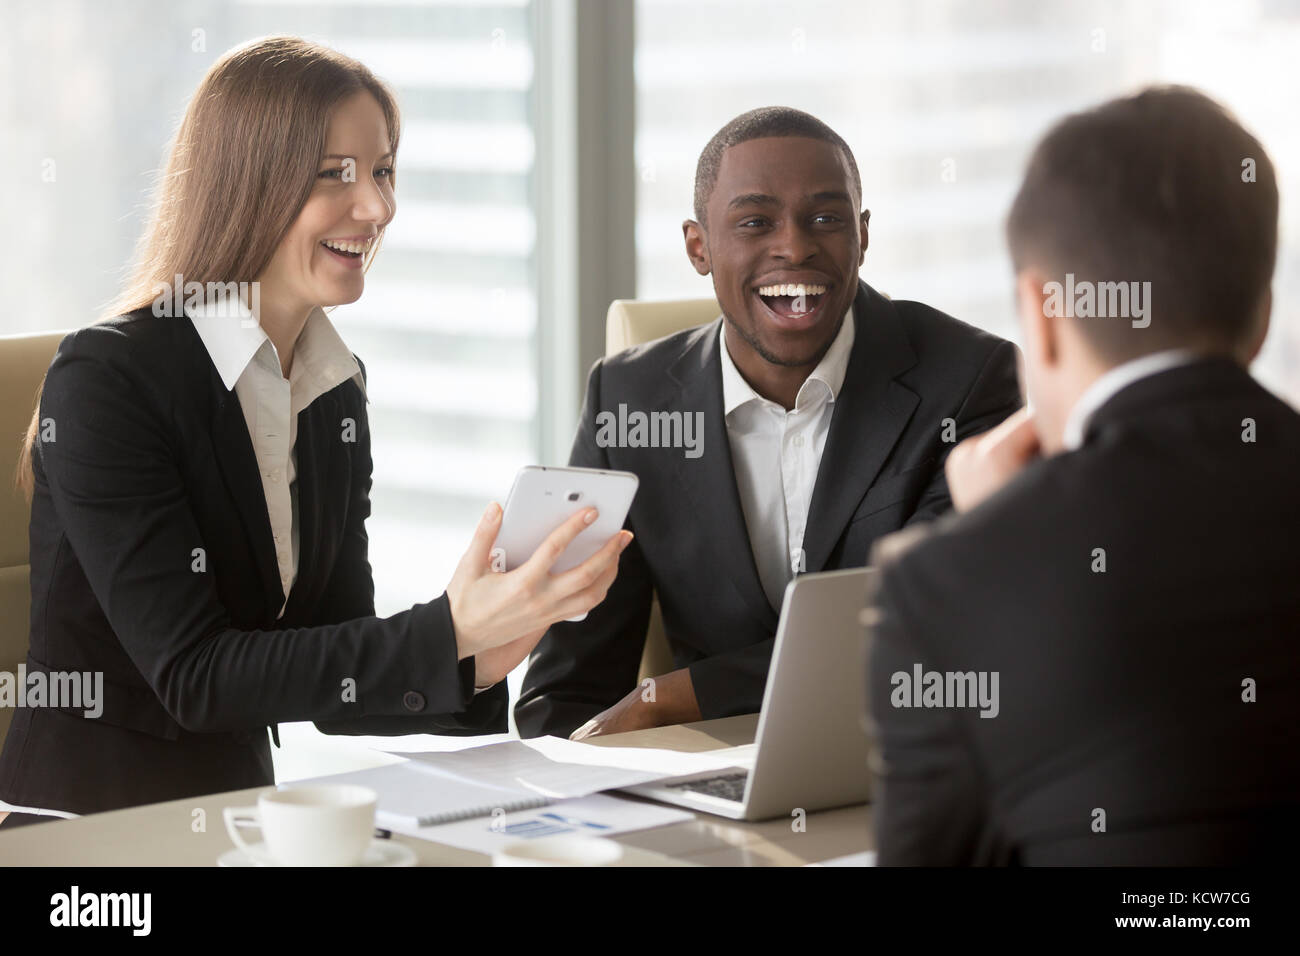 Happy smiling caucasian businesswoman using digital tablet at negotiations with multinational partners, laughing - Stock Image